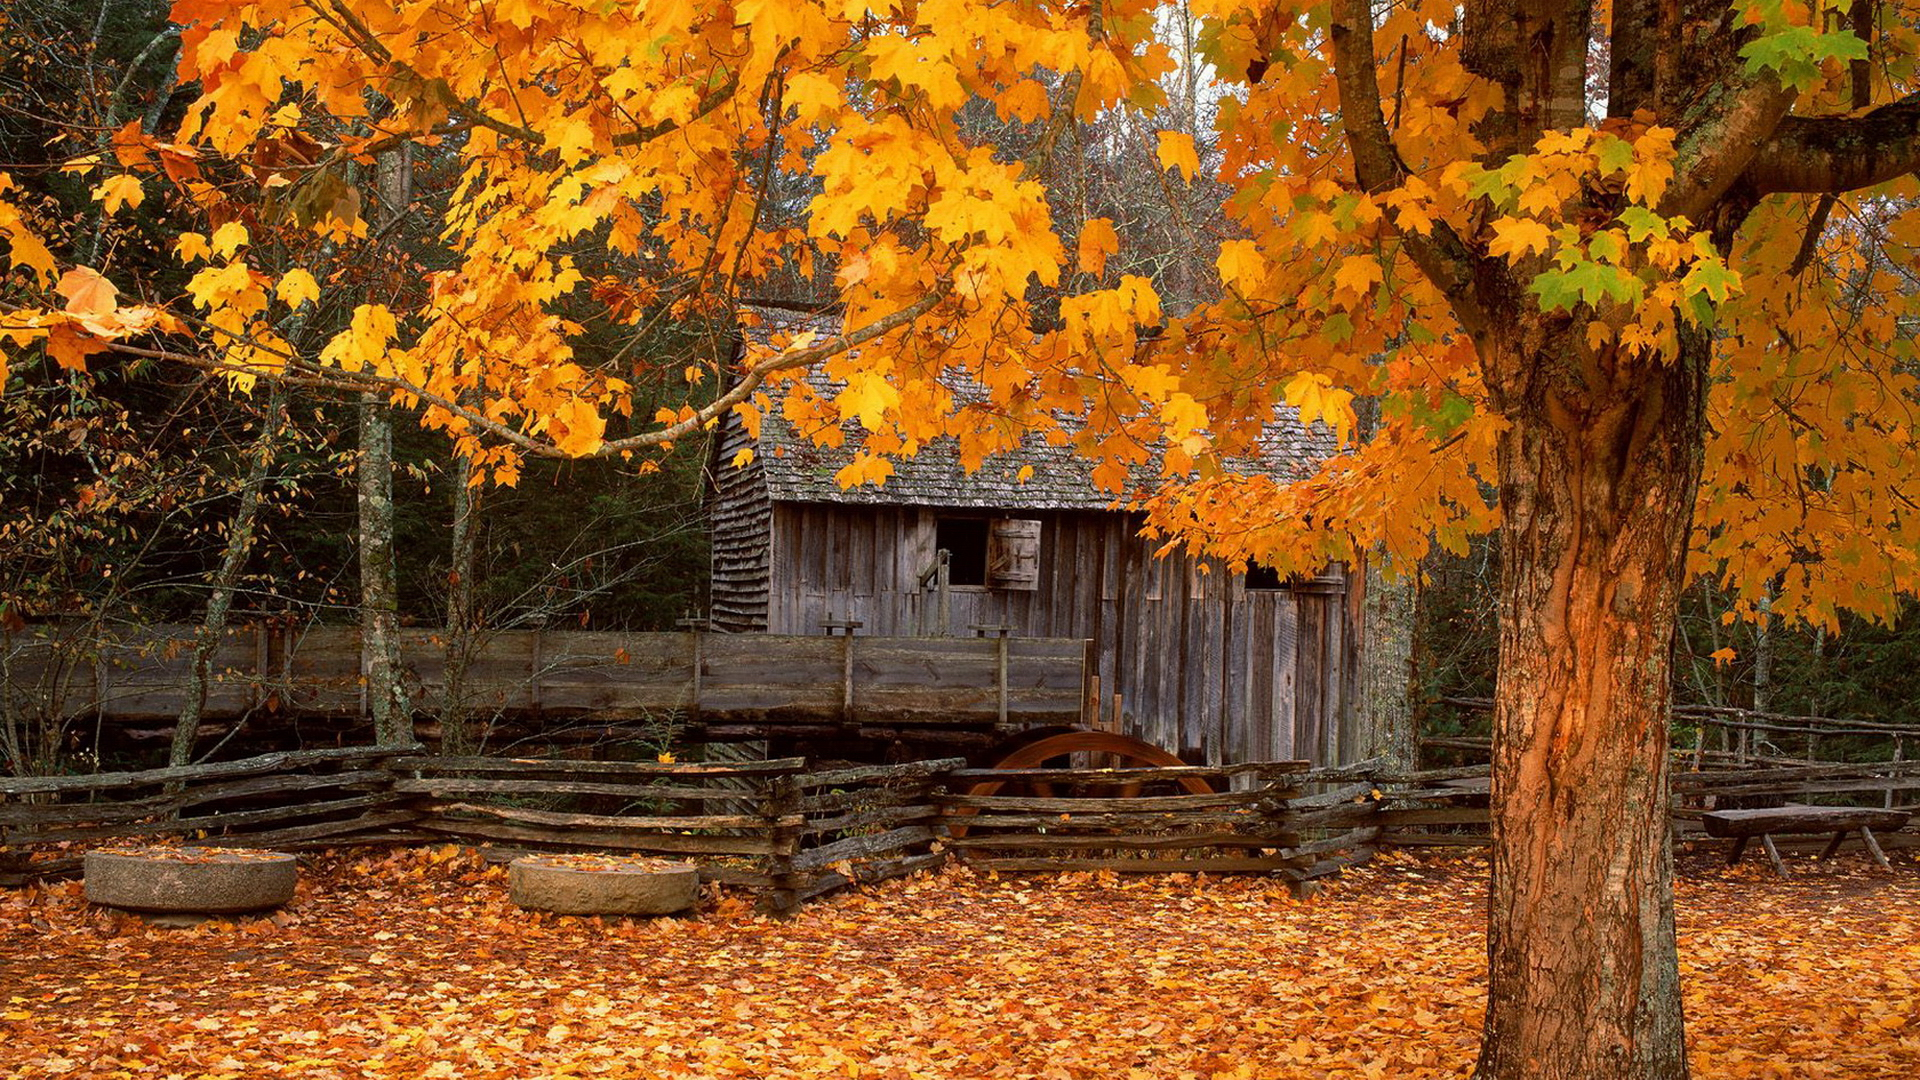 Cabin Wallpapers Autumn Cabin Myspace Backgrounds Autumn Cabin 1920x1080